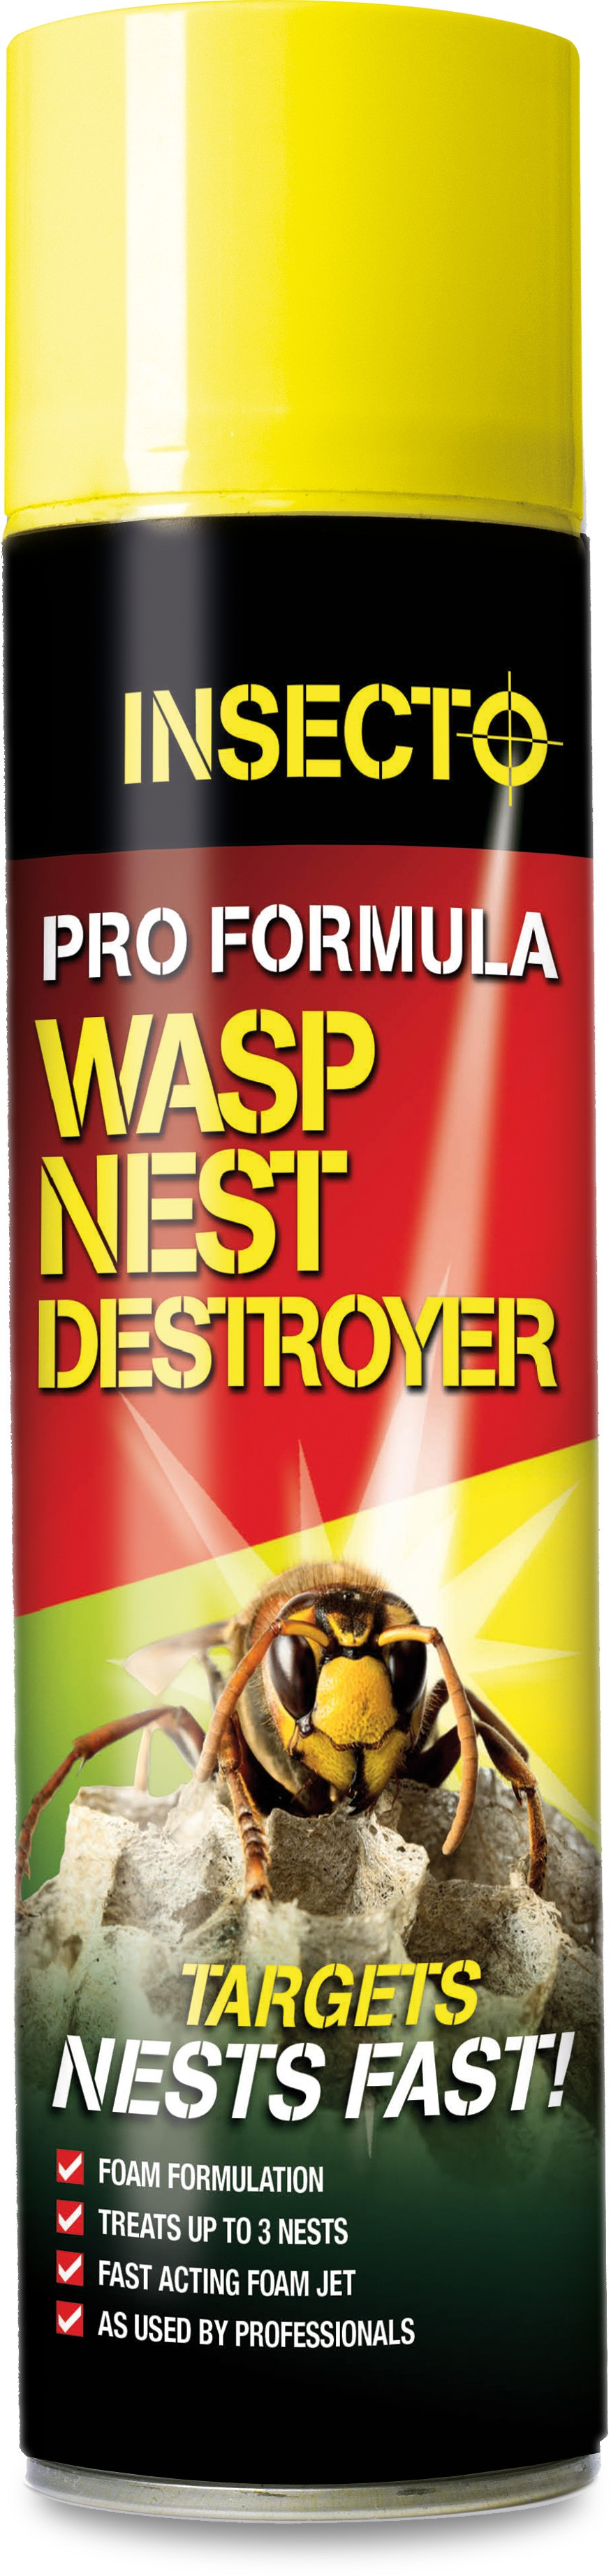 Insecto Pro Formula Wasp Nest Destroyer Foam 300ml